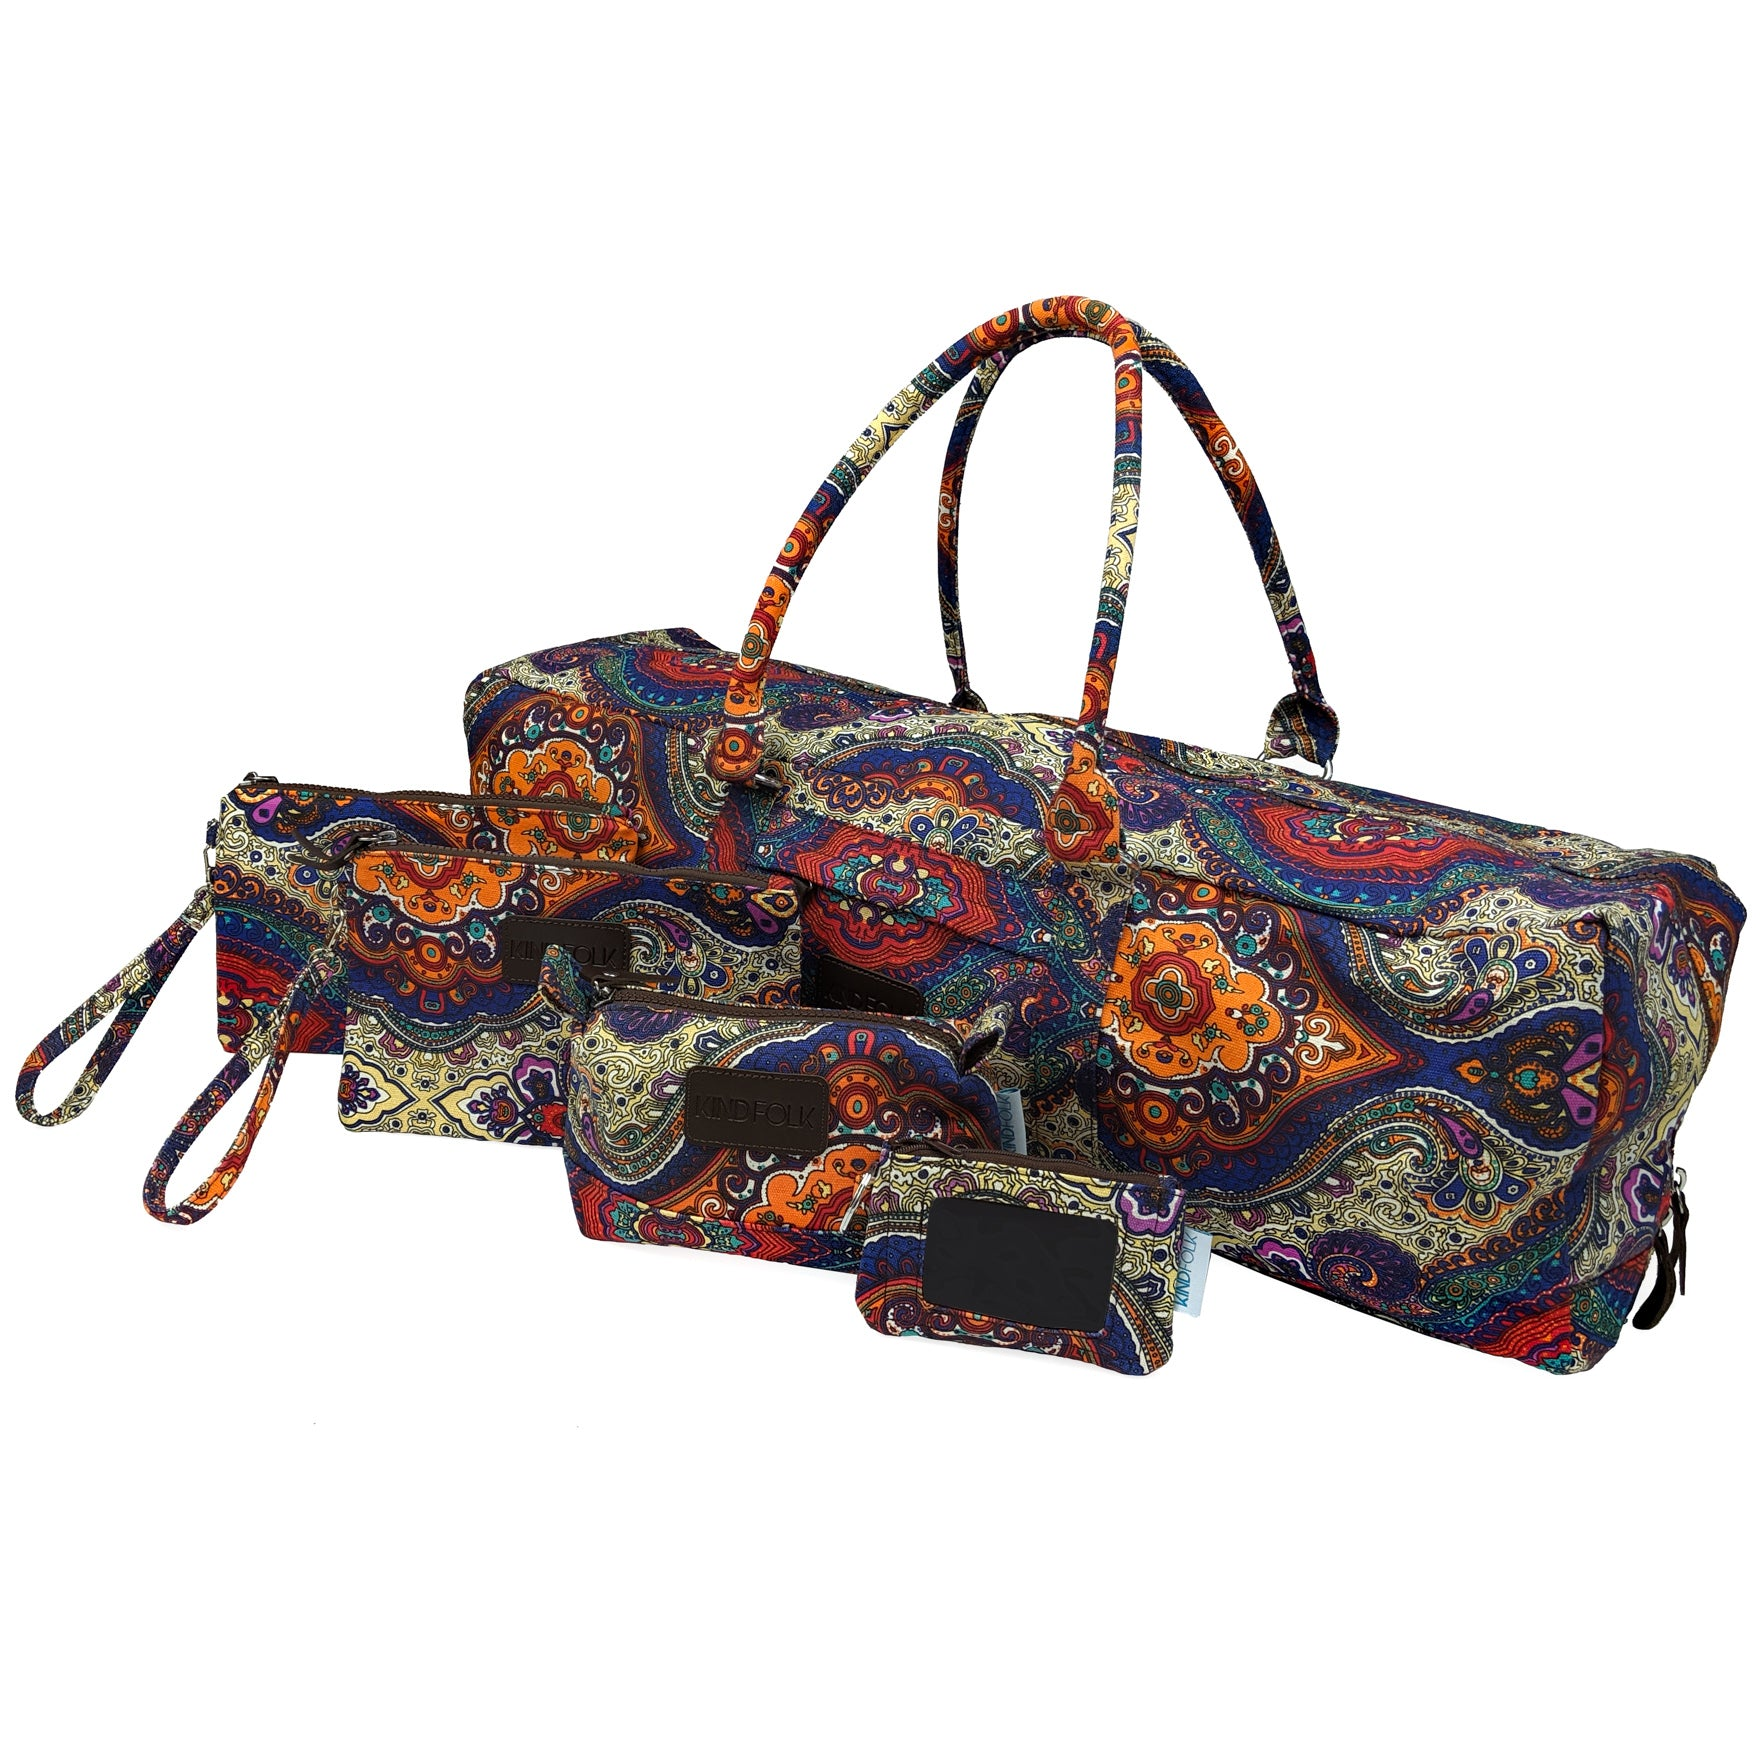 Yoga Duffel & Accessory Bundle - Kindfolk Athletics